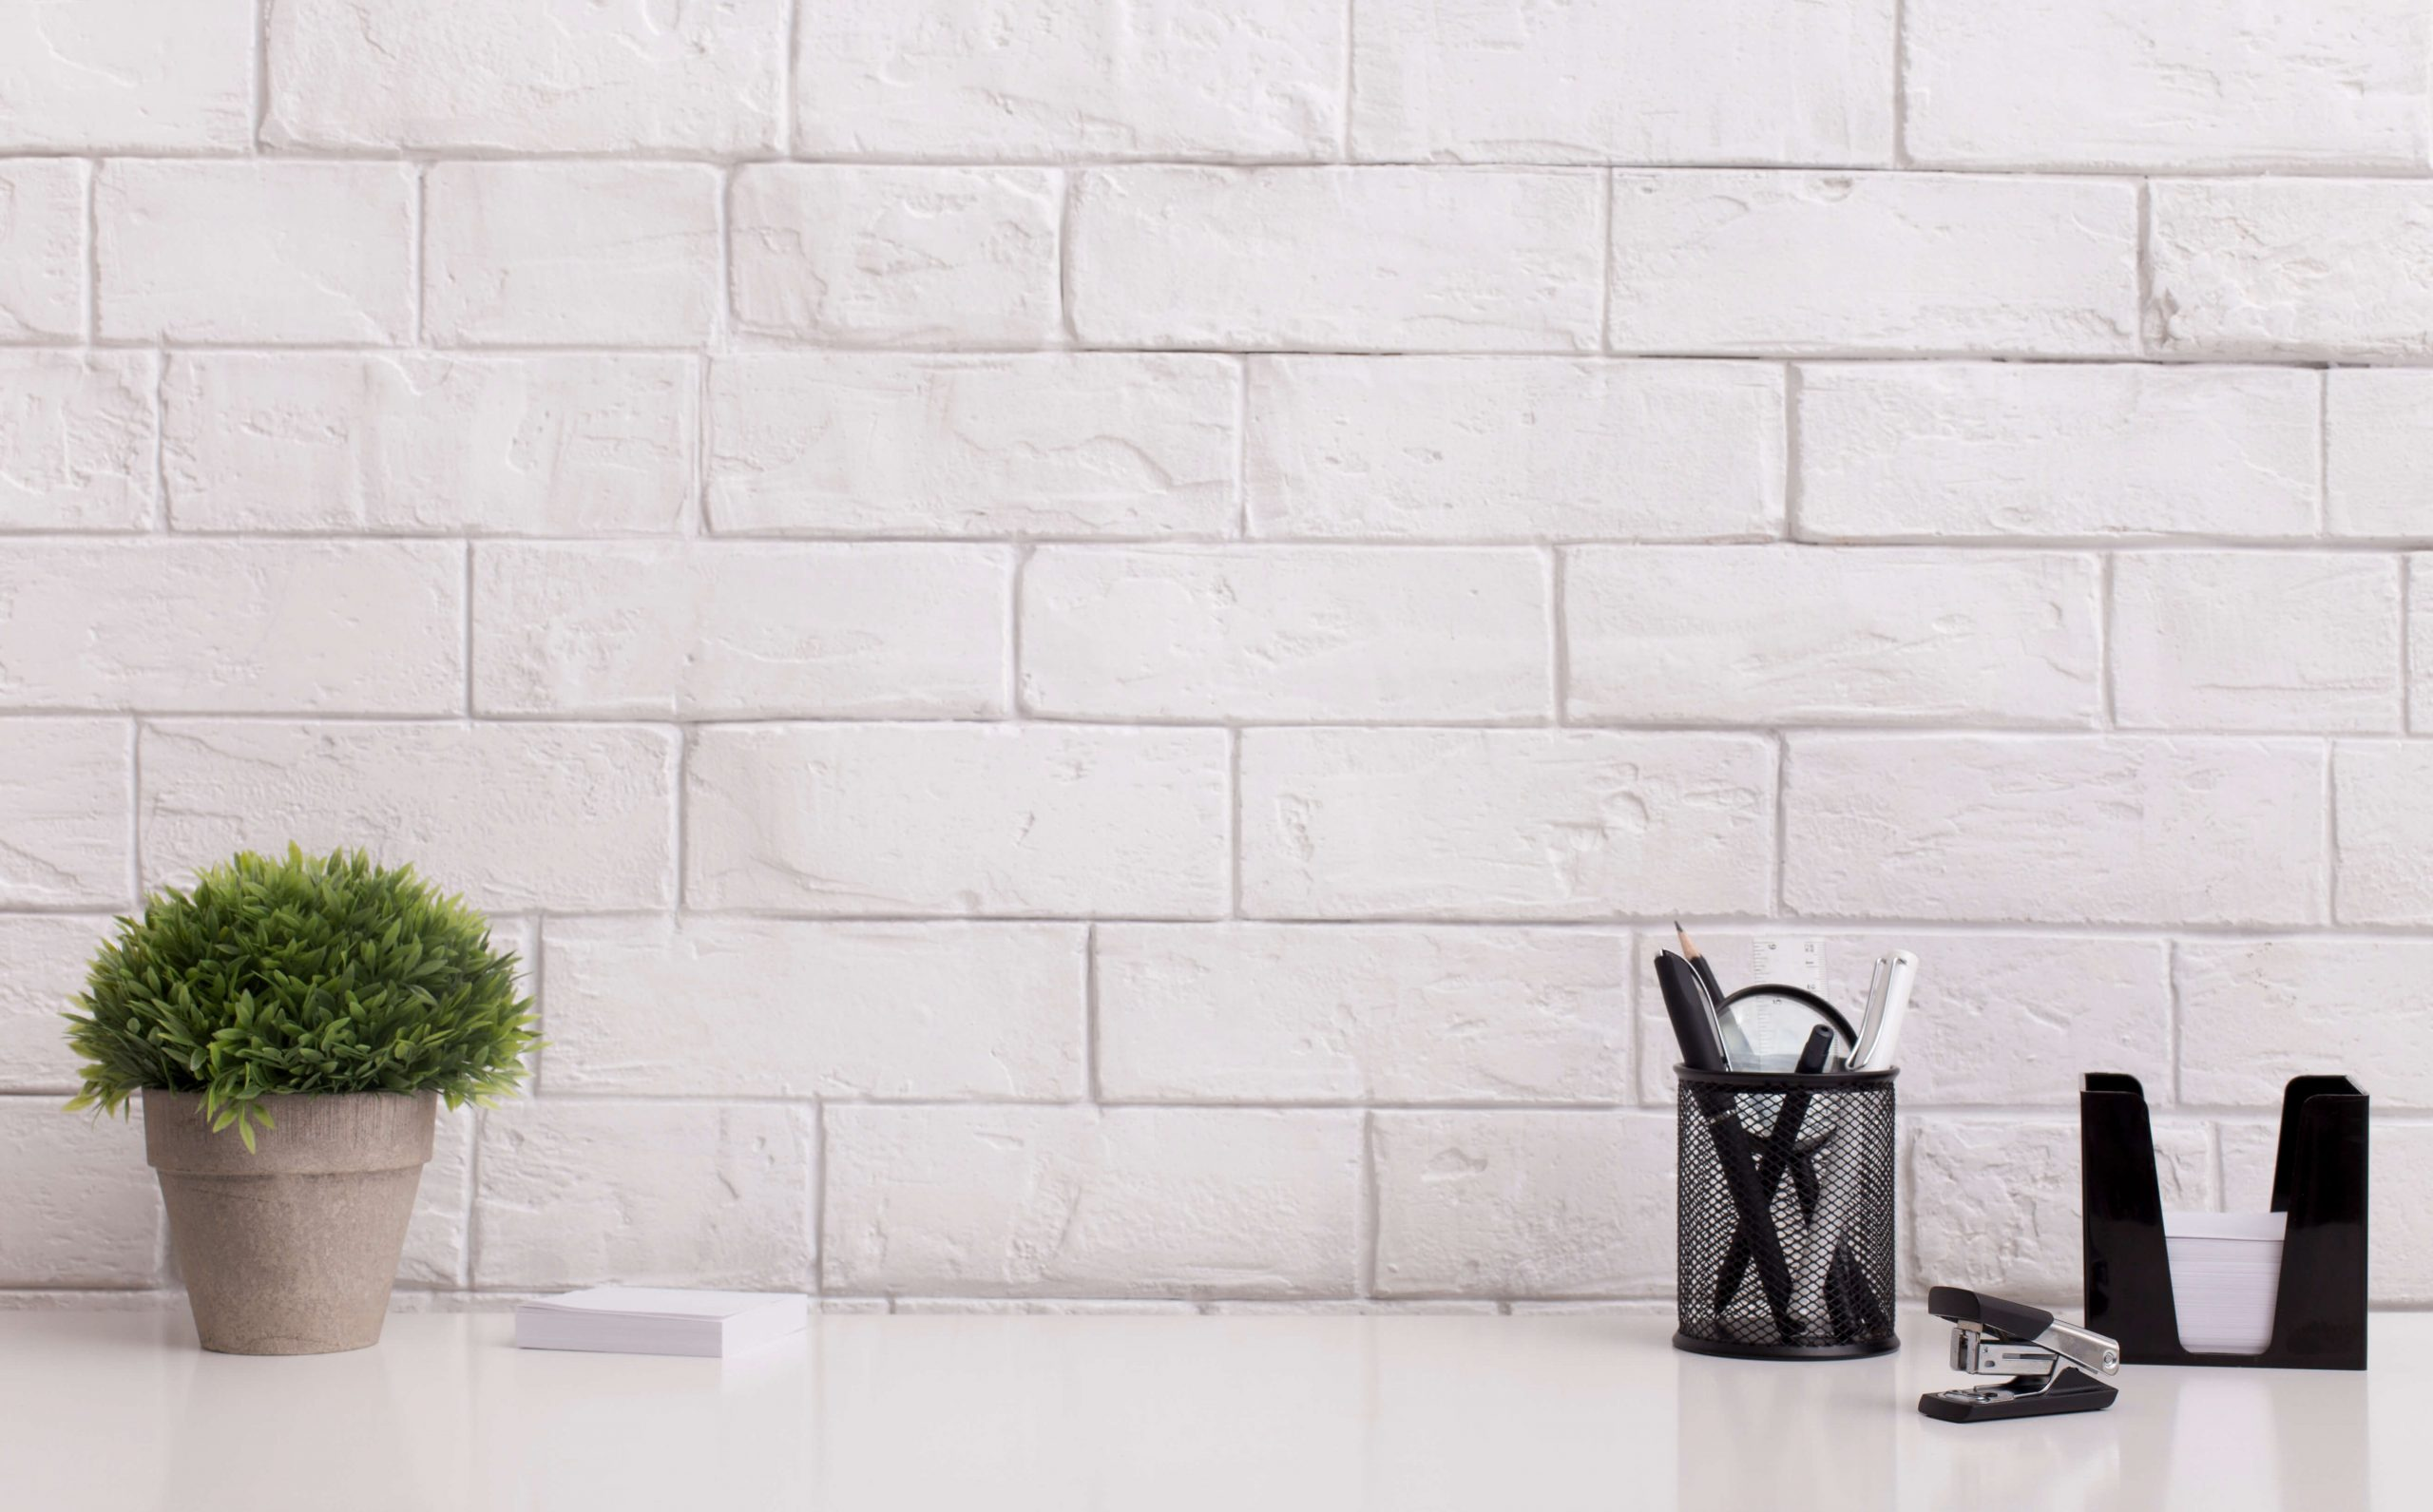 brick wall with plant and office supplies